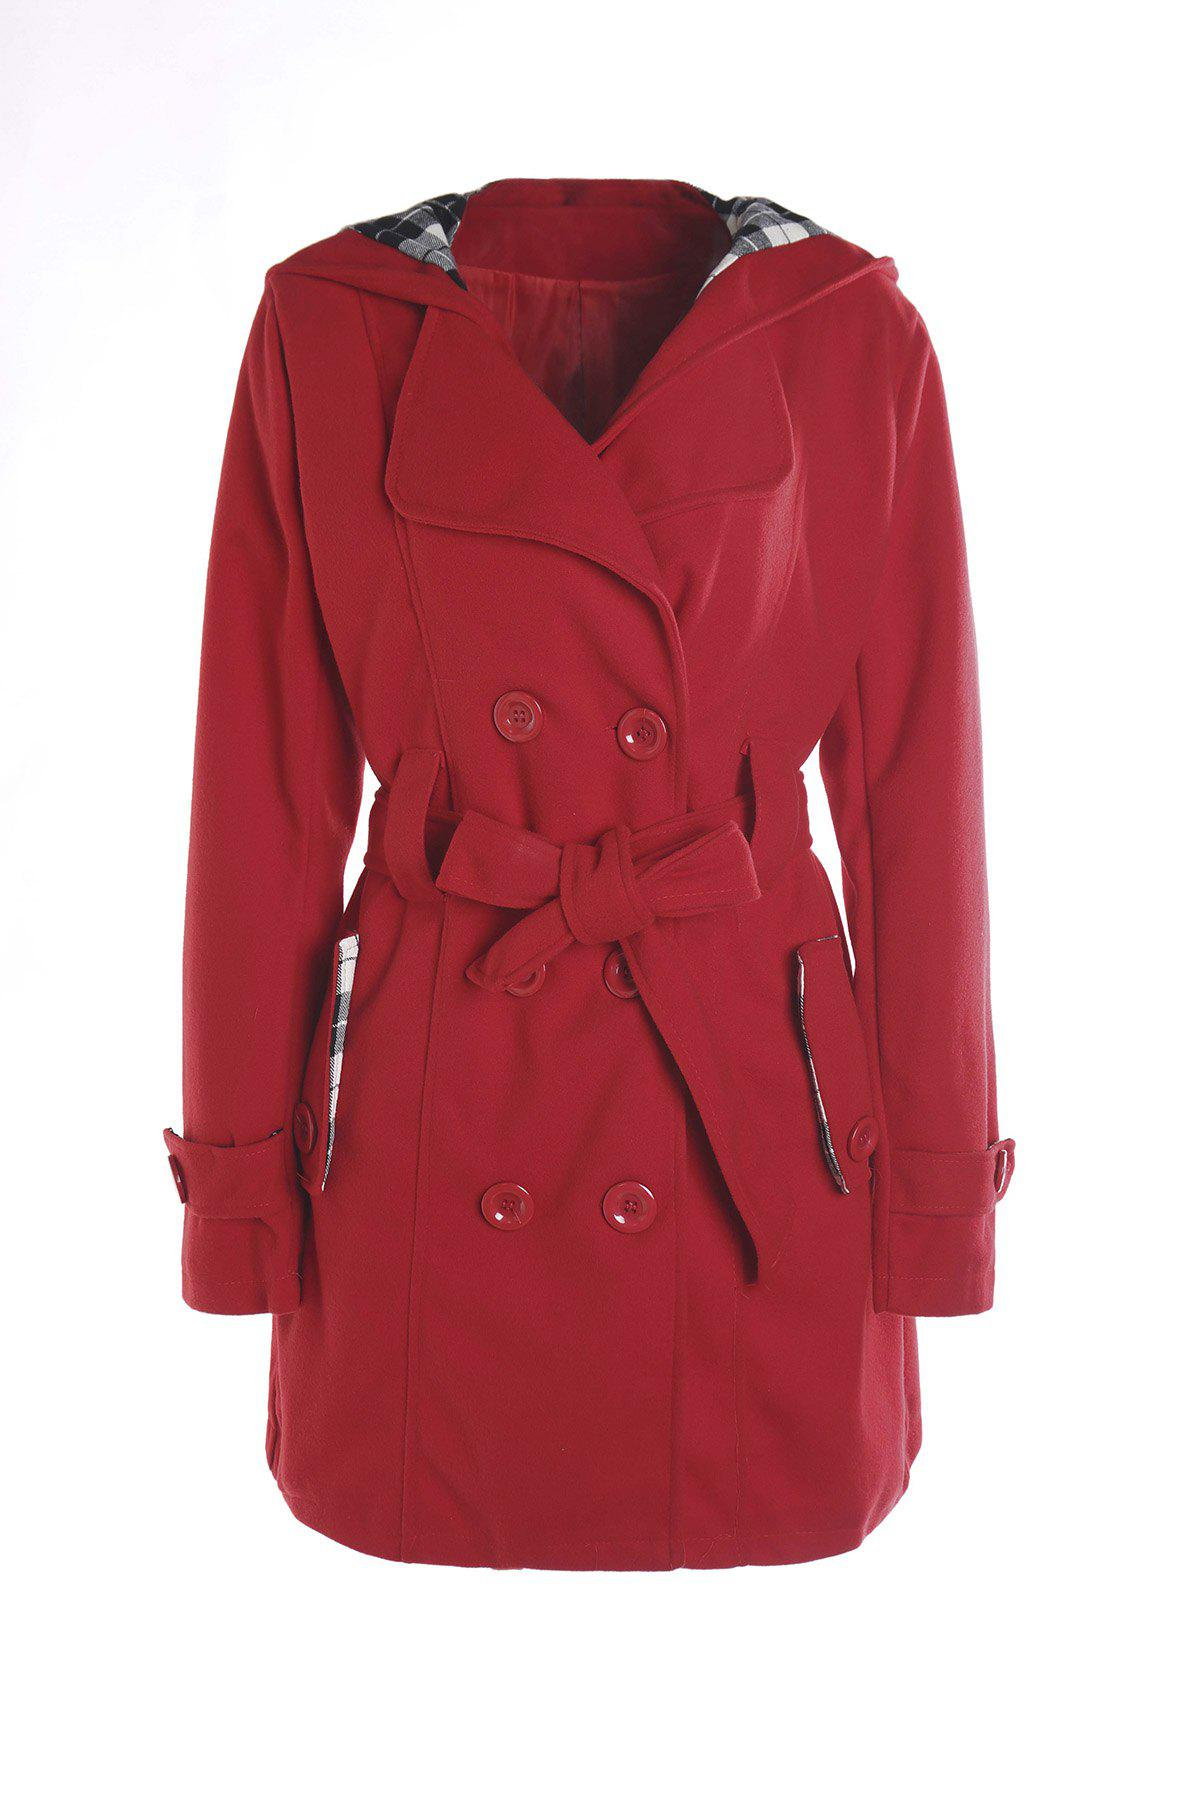 Stylish Double-Breasted Hooded Long Sleeve Worsted Coat For Women - RED M